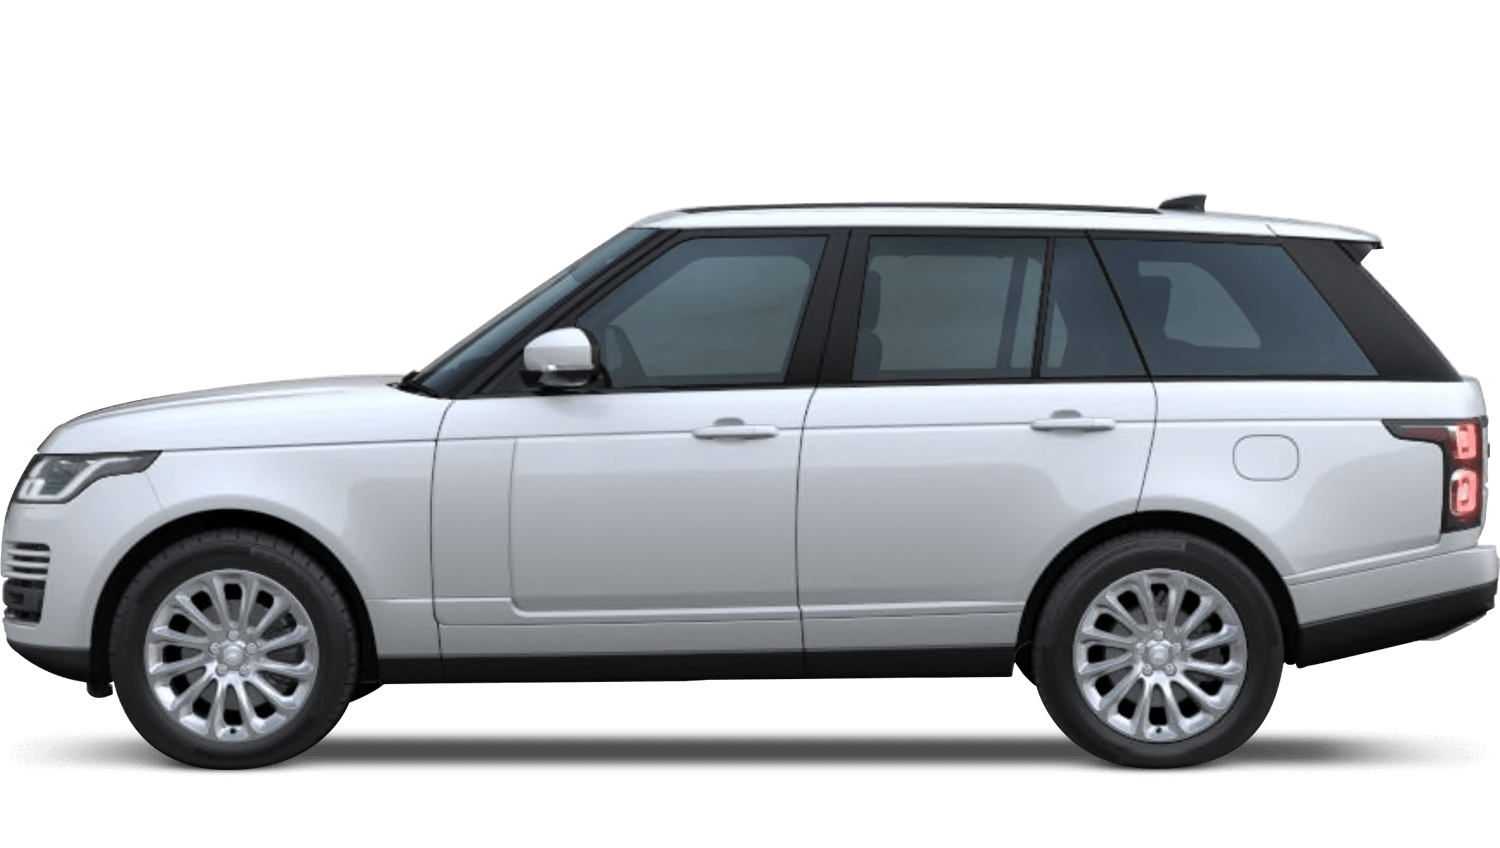 Land Rover Range Rover PHEV Vogue